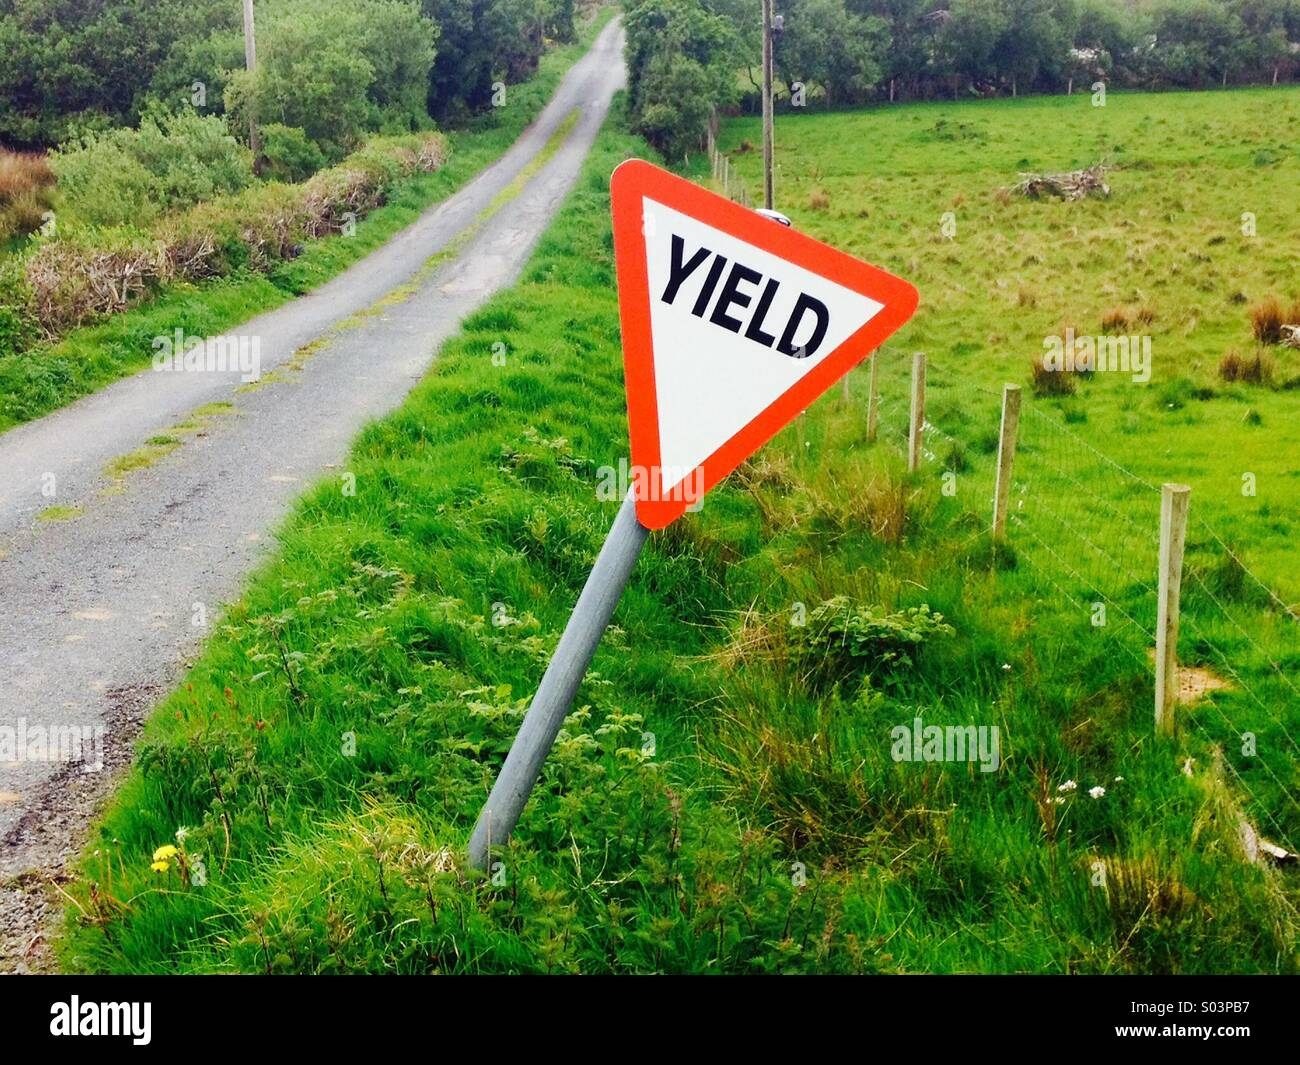 Yield or stop sign in rural Ireland financial meaning too Stock Photo